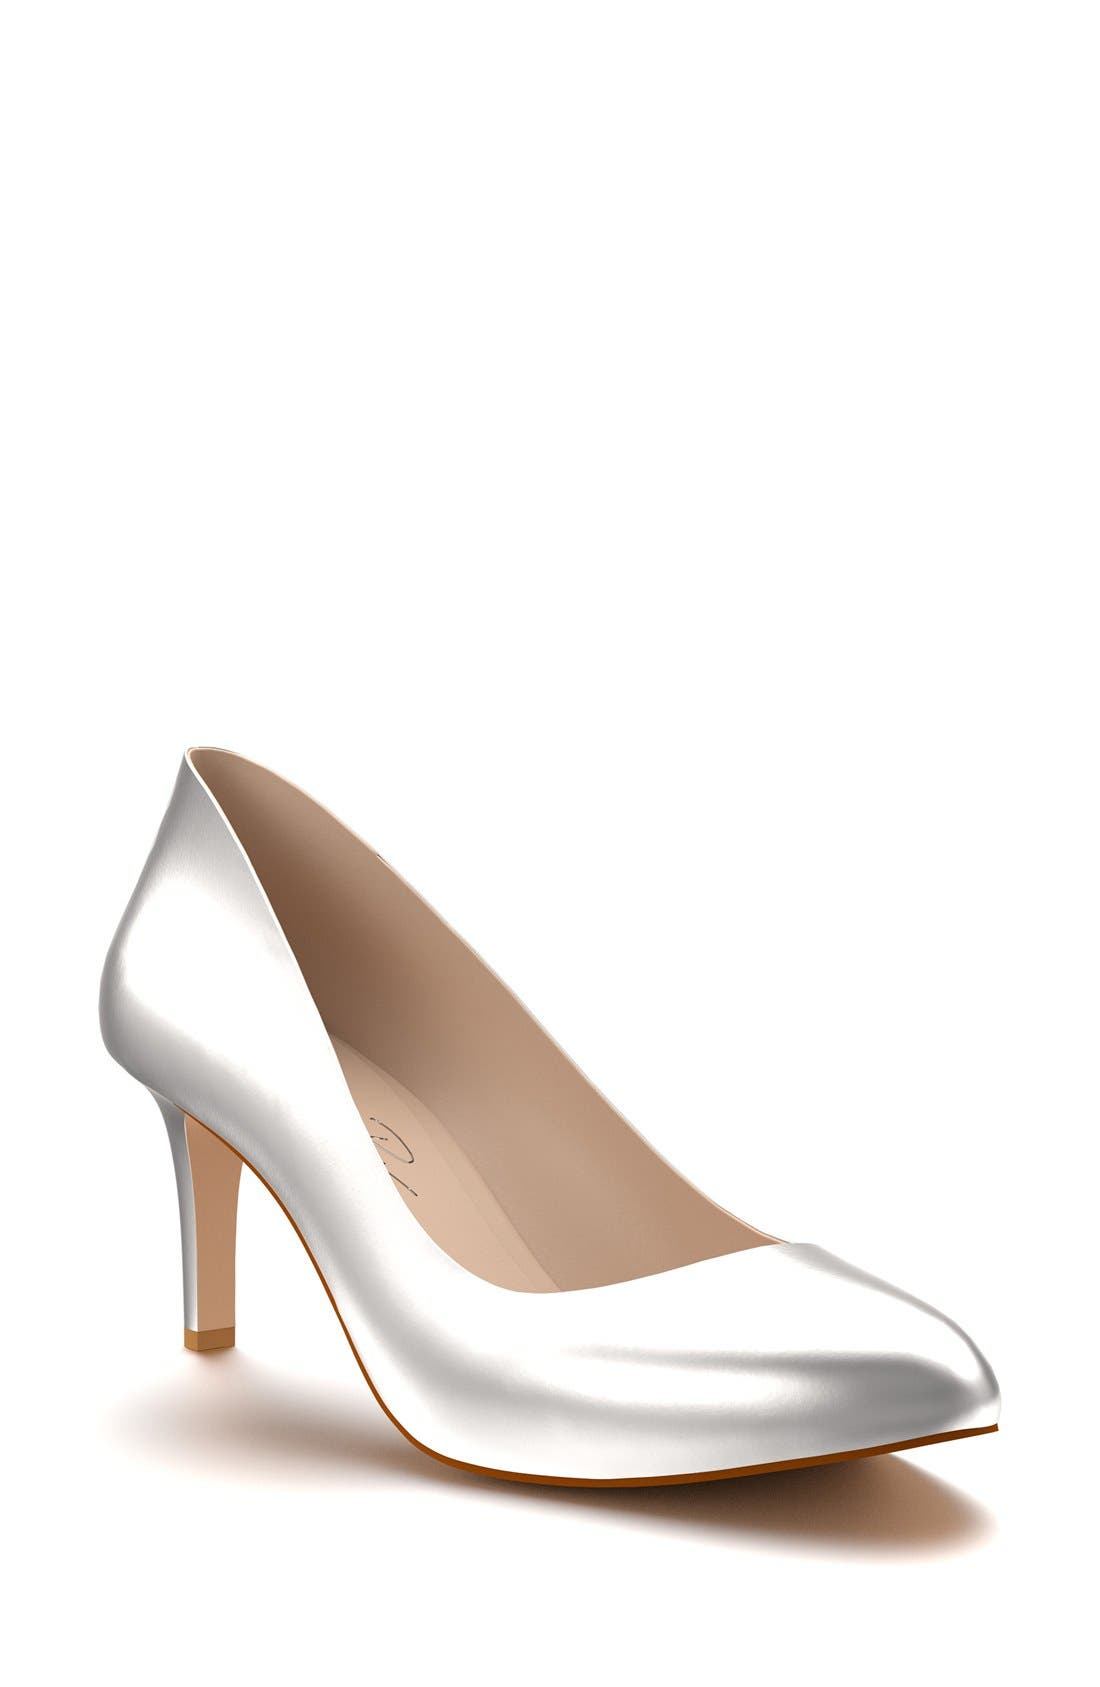 Shoes of Prey Round Toe Pump (Women)